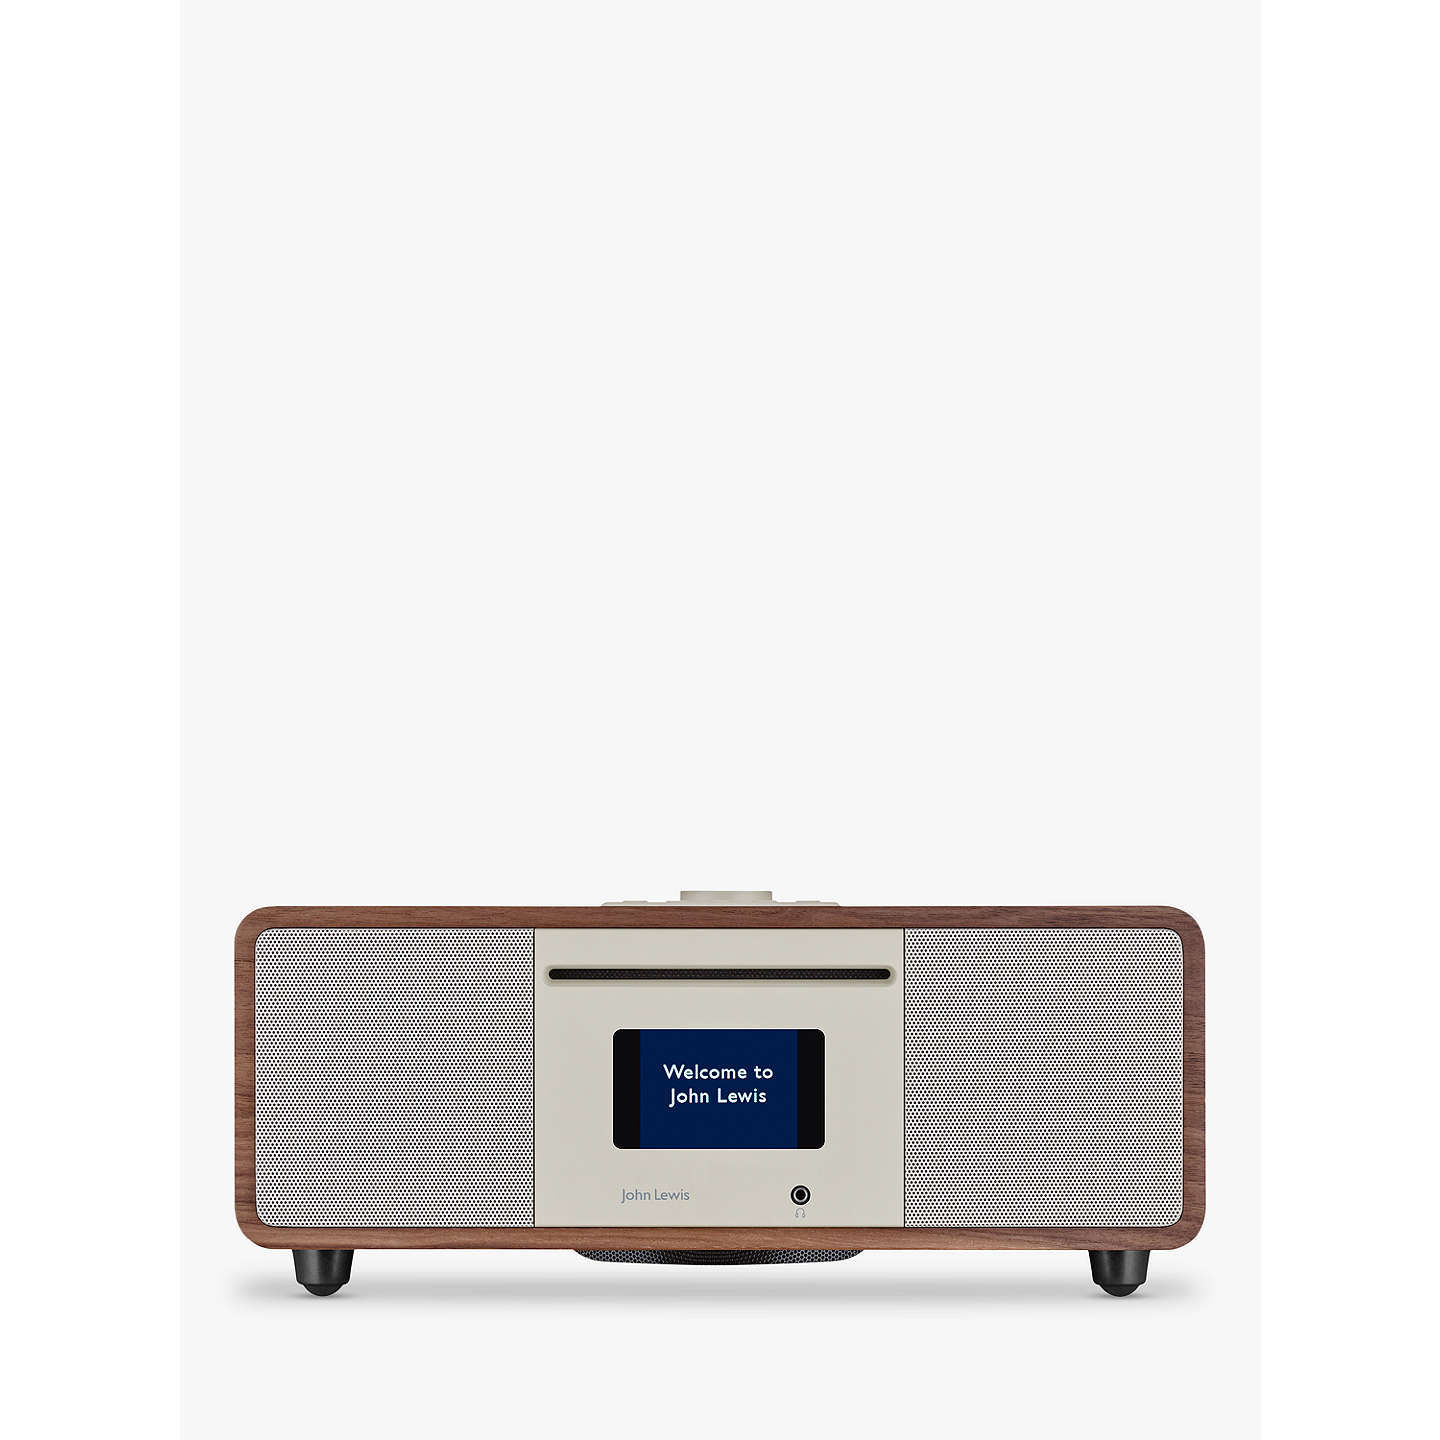 BuyJohn Lewis Cello Hi Fi Music System With DAB/DAB+/FM/Internet ...